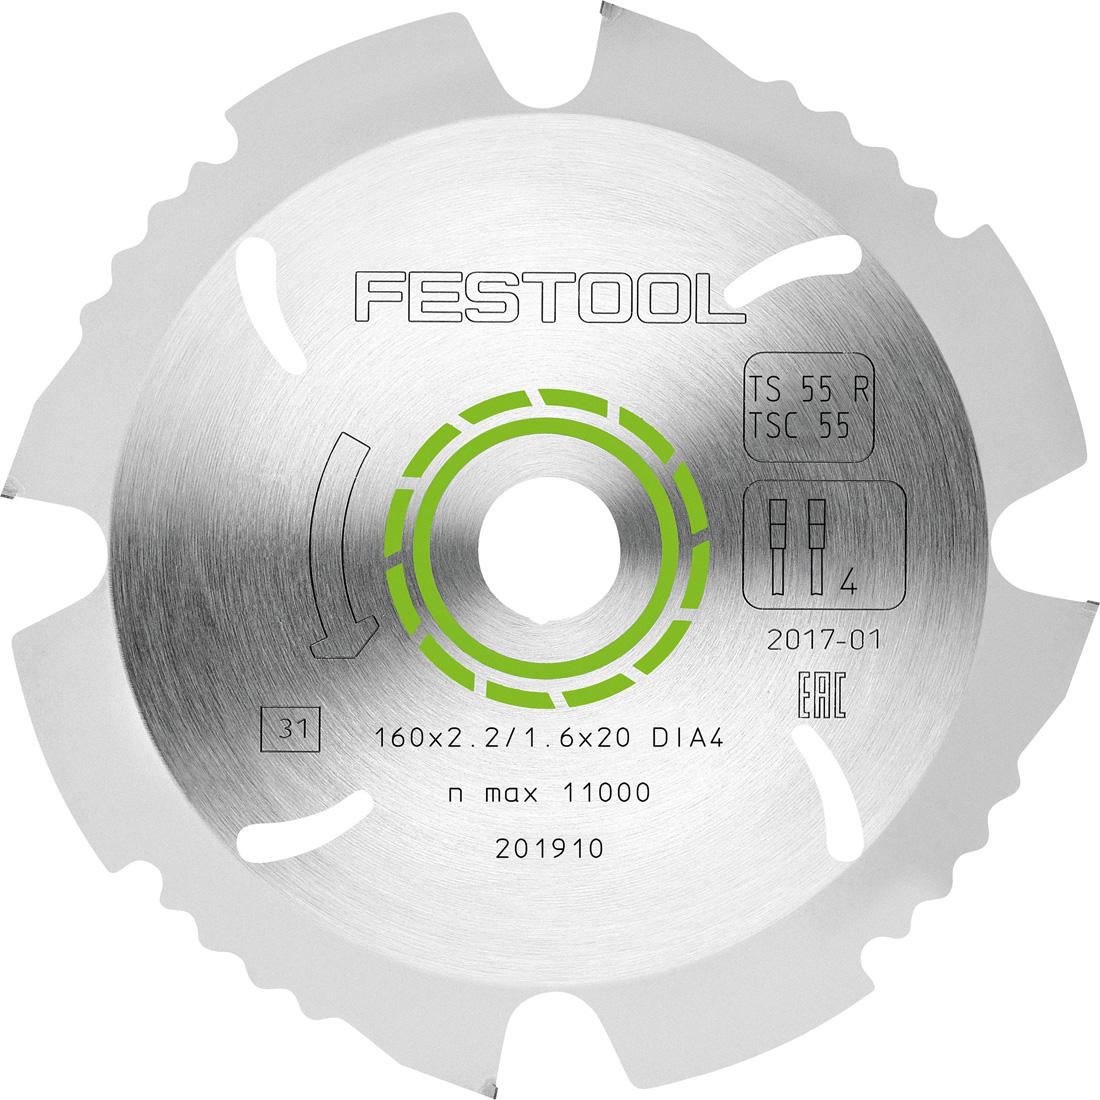 Festool_diamond_sawblade_01